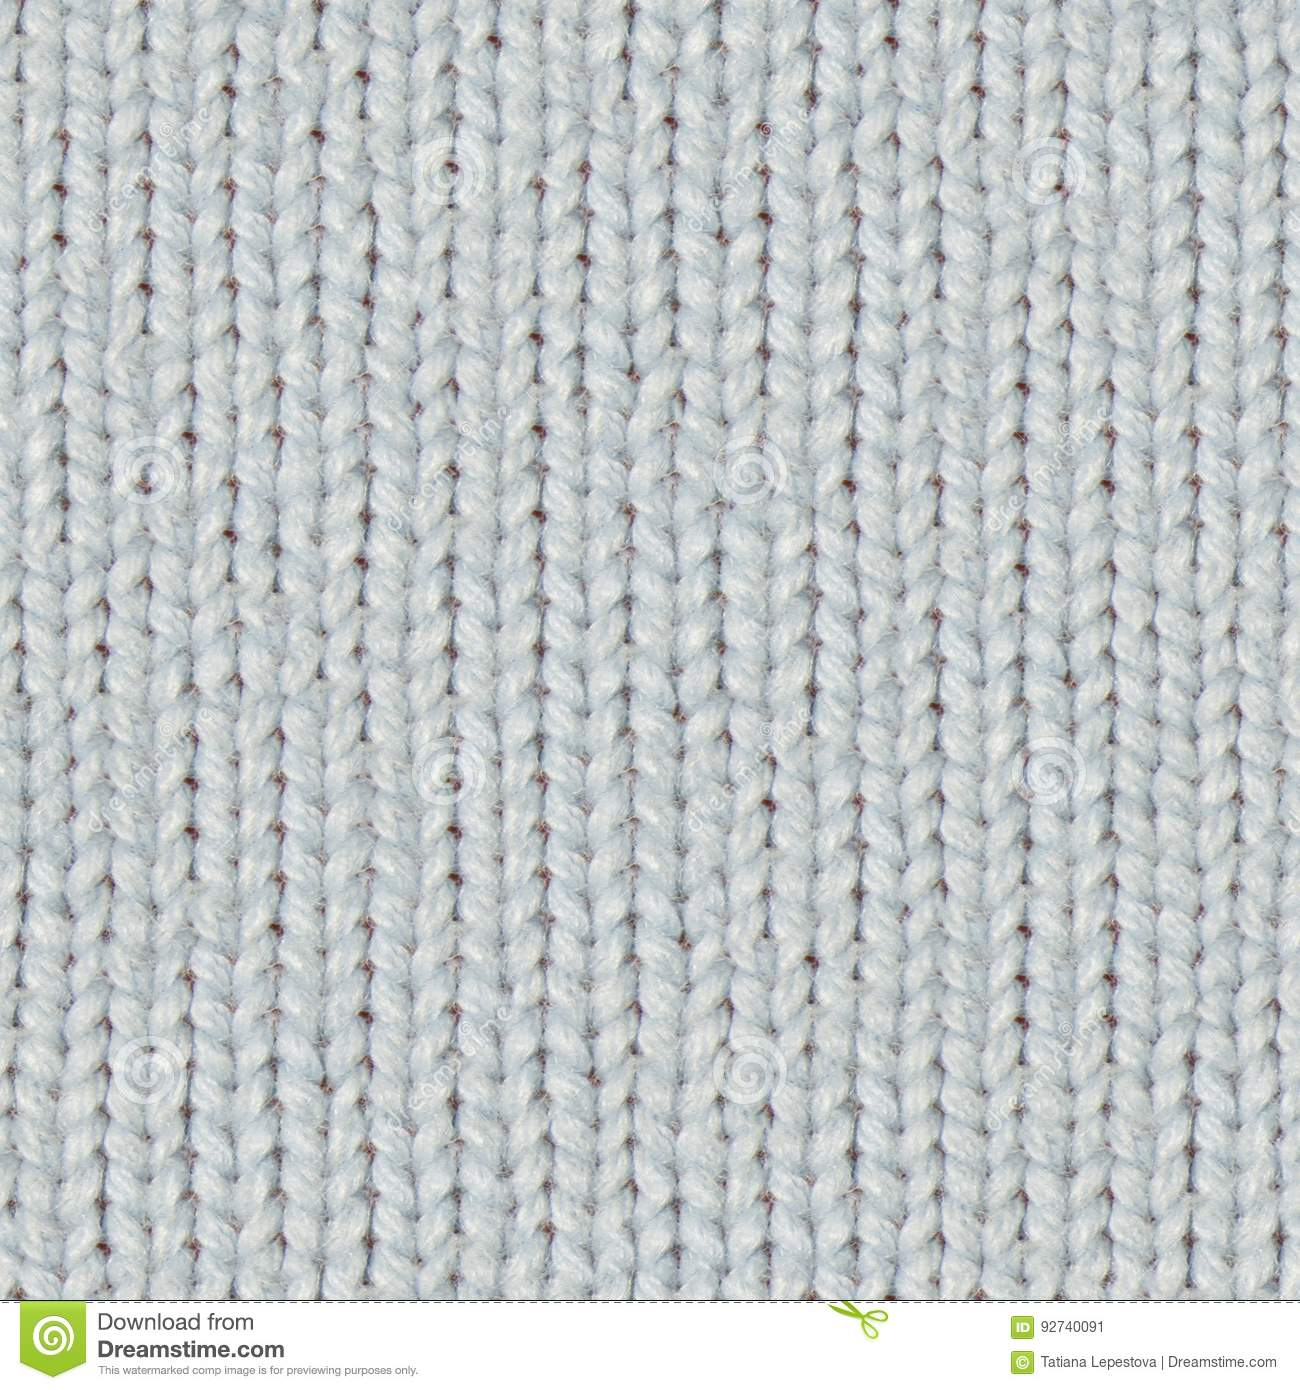 Fabric Texture 7 Diffuse Seamless Map. Light Grey Fabric. Stock ... for Grey Fabric Texture Seamless  104xkb